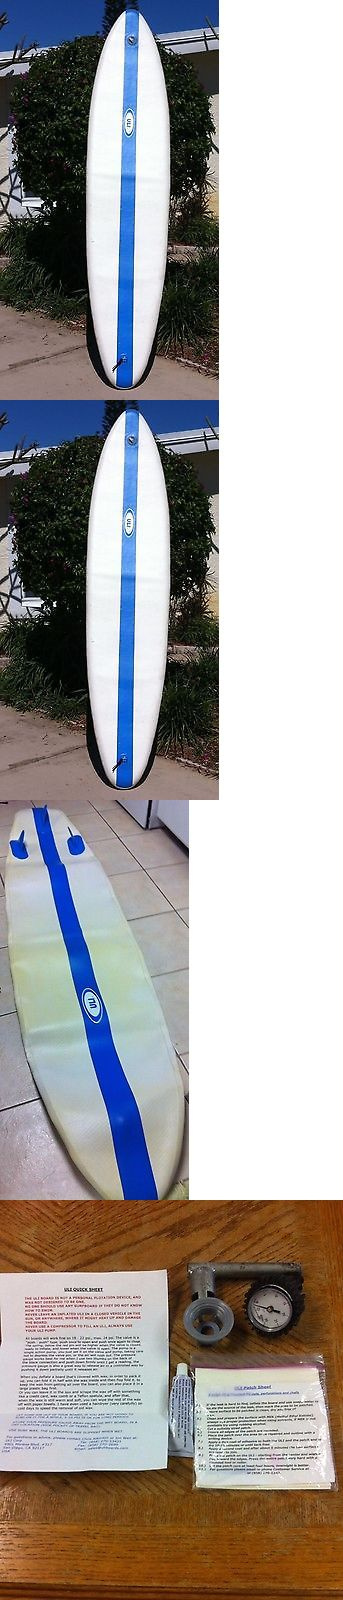 Surfboards 22710: Surfboard Uli Inflatable 8 6 Tri Fin Travels With No Excess Baggage Charges. -> BUY IT NOW ONLY: $549 on eBay!